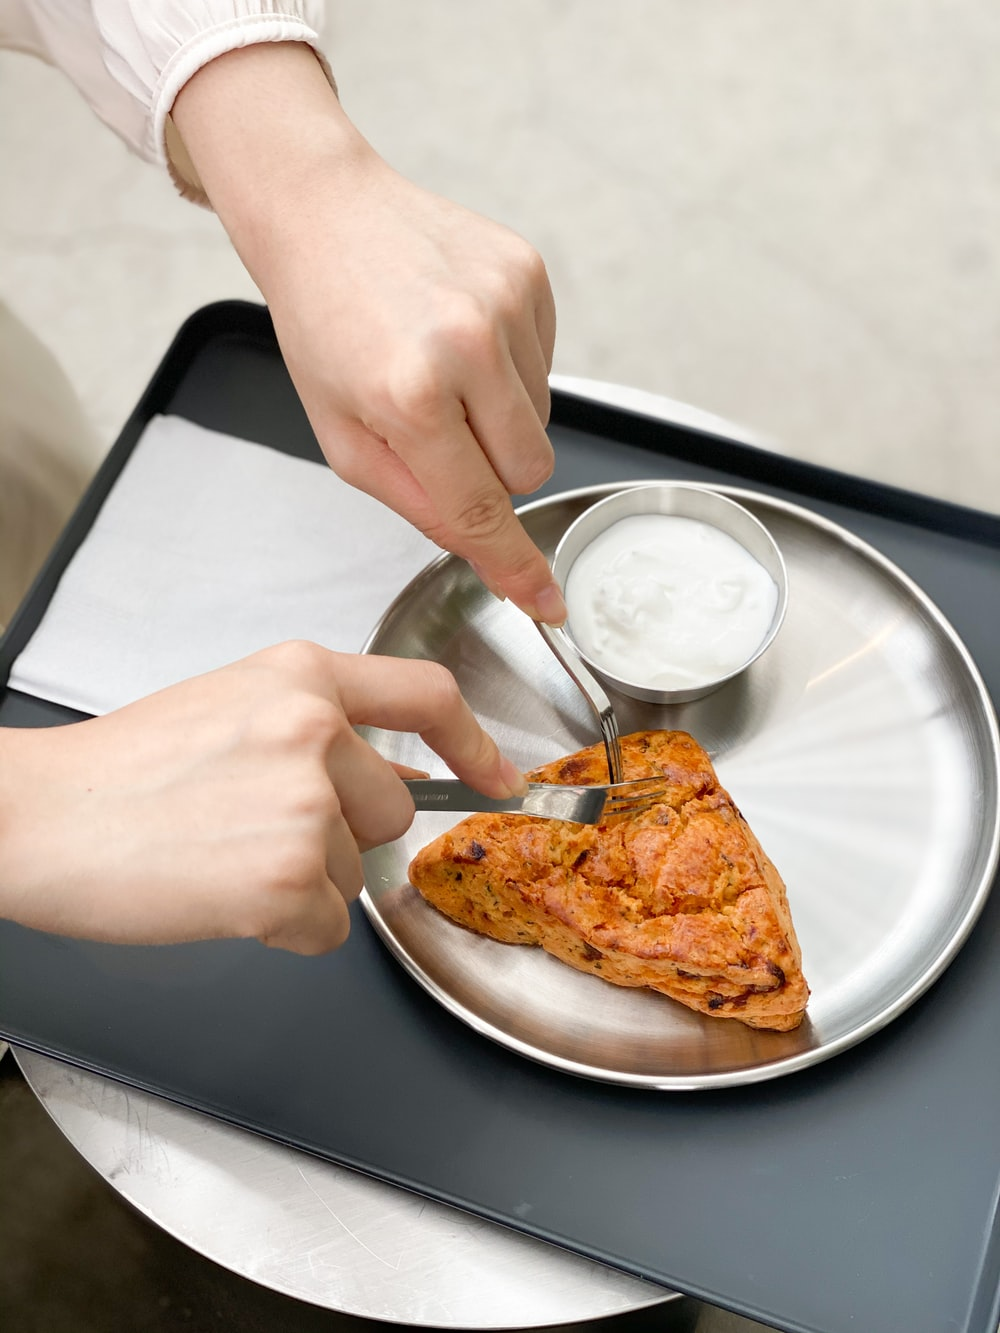 person holding stainless steel spoon and fork on white ceramic plate